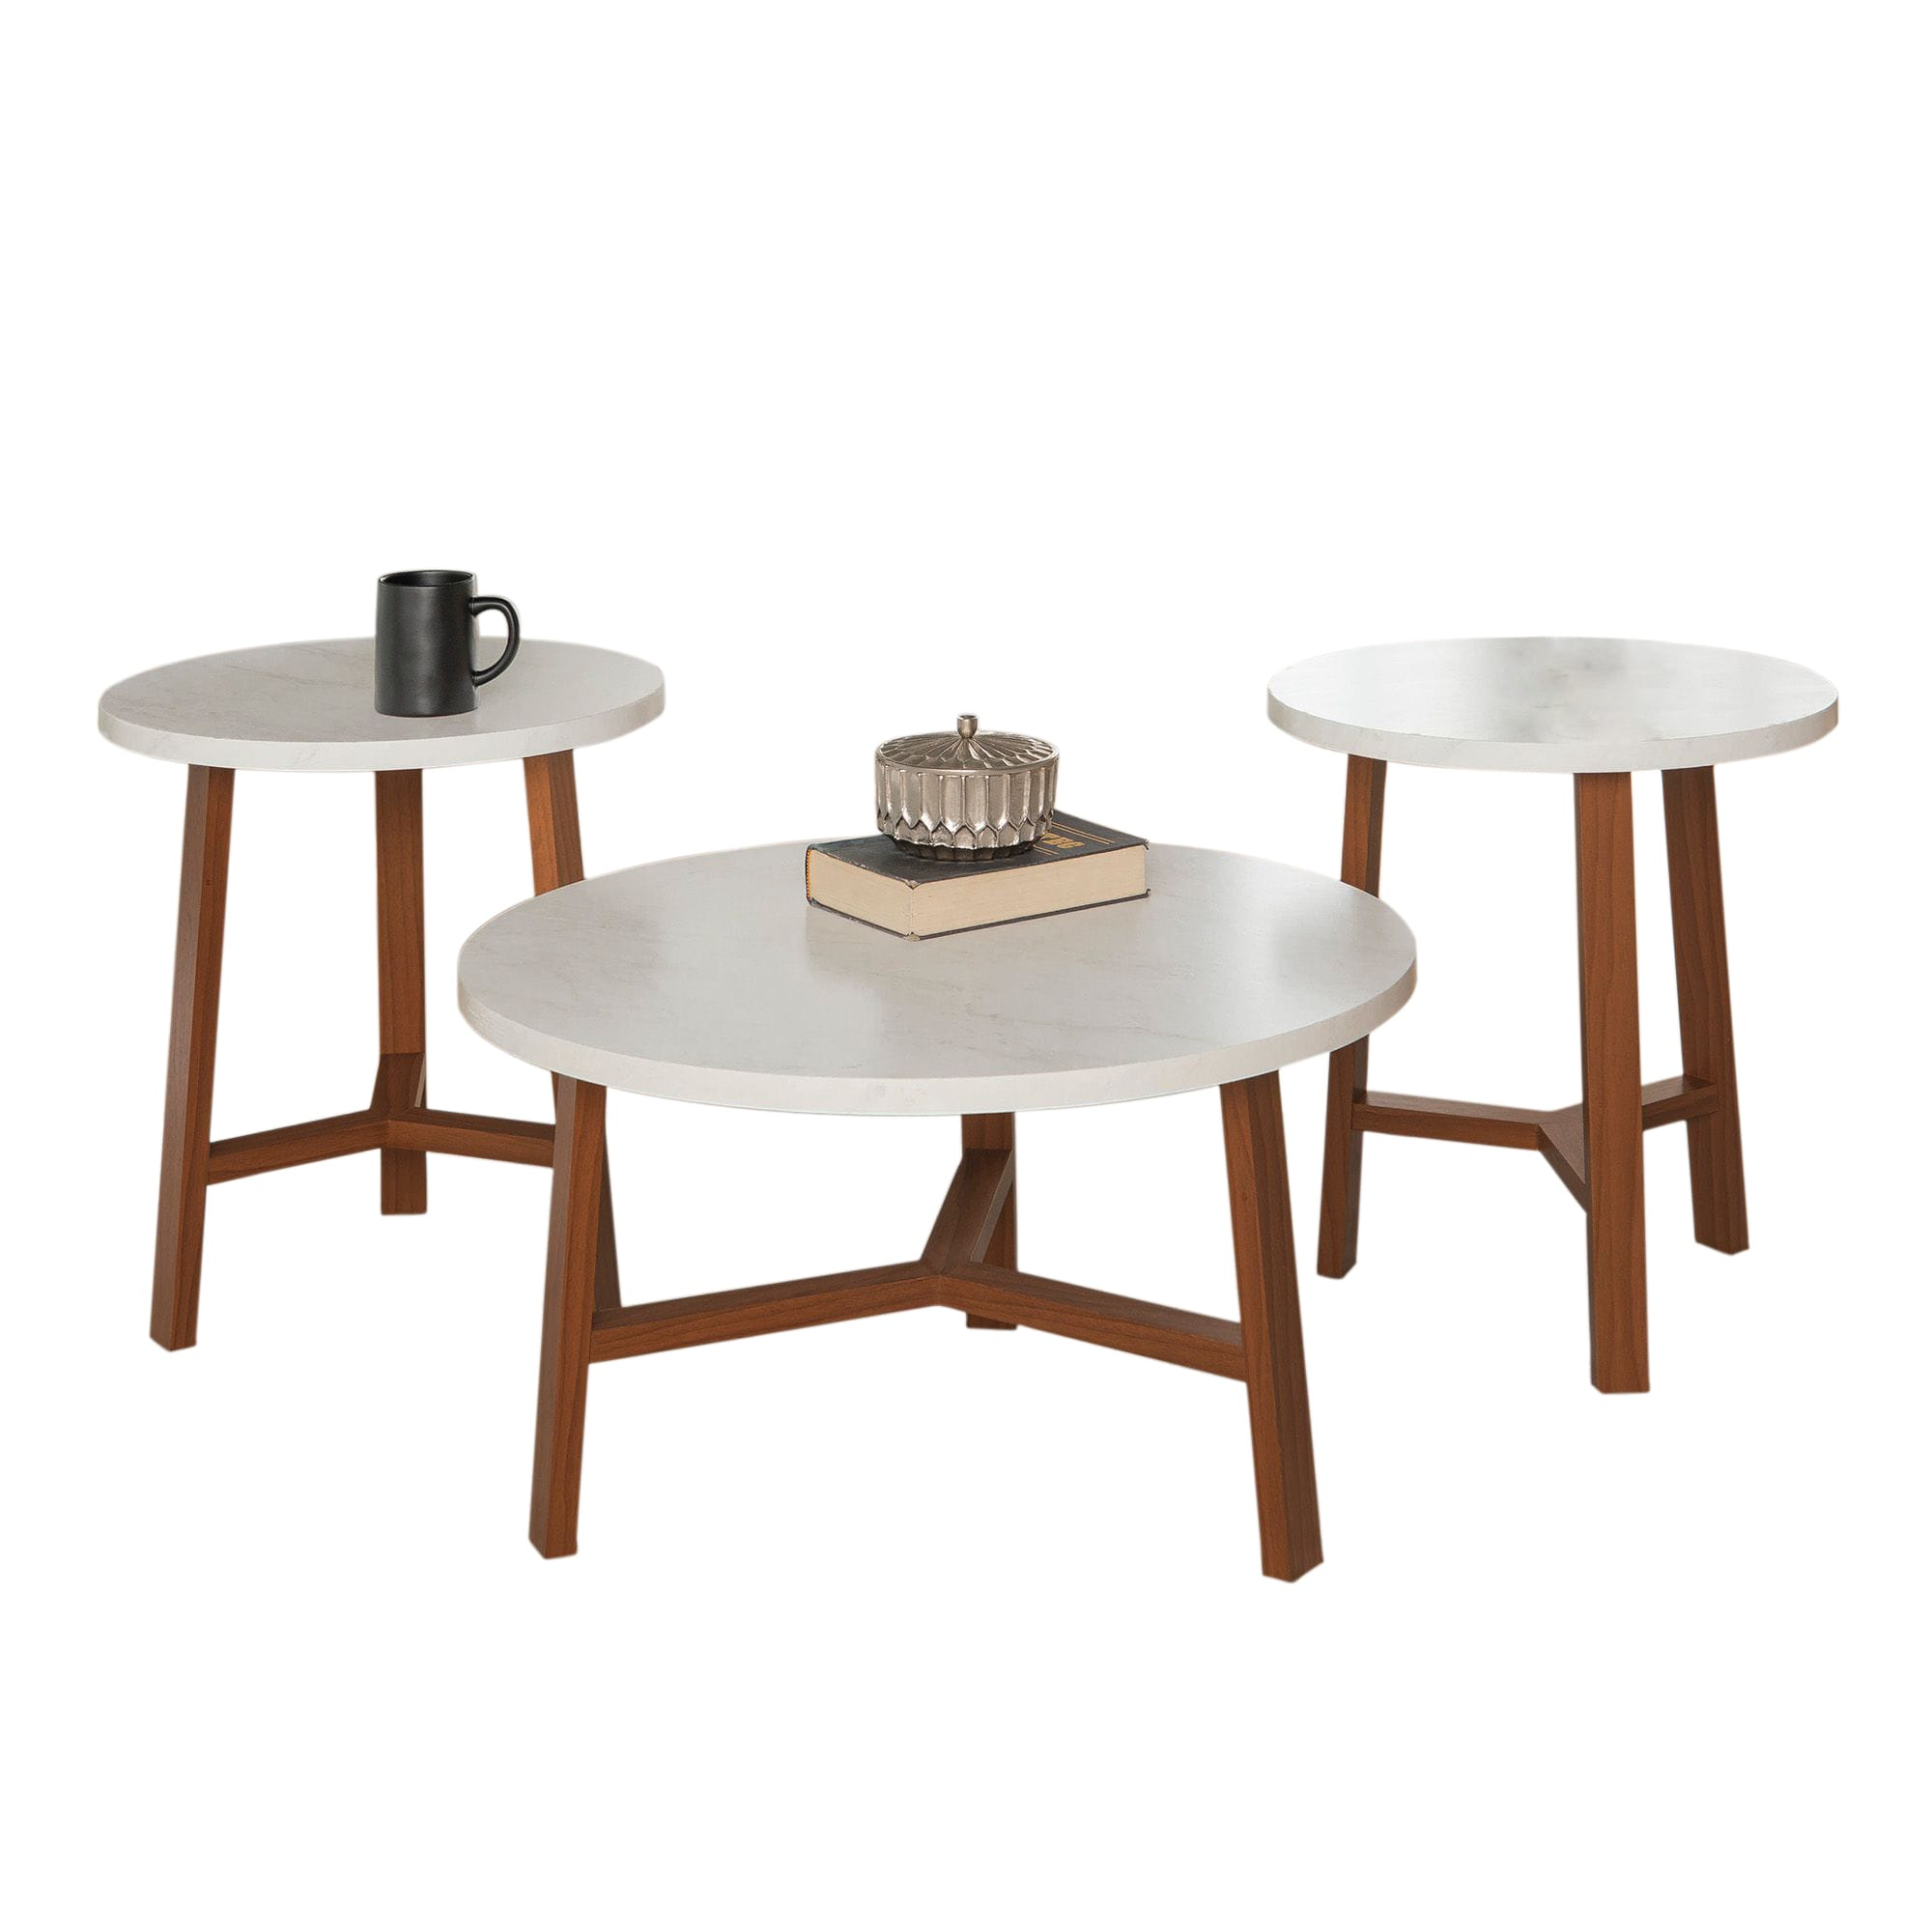 3 Piece Mid Century Modern Accent Table Set Faux White Marble Acorn By Walker Edison